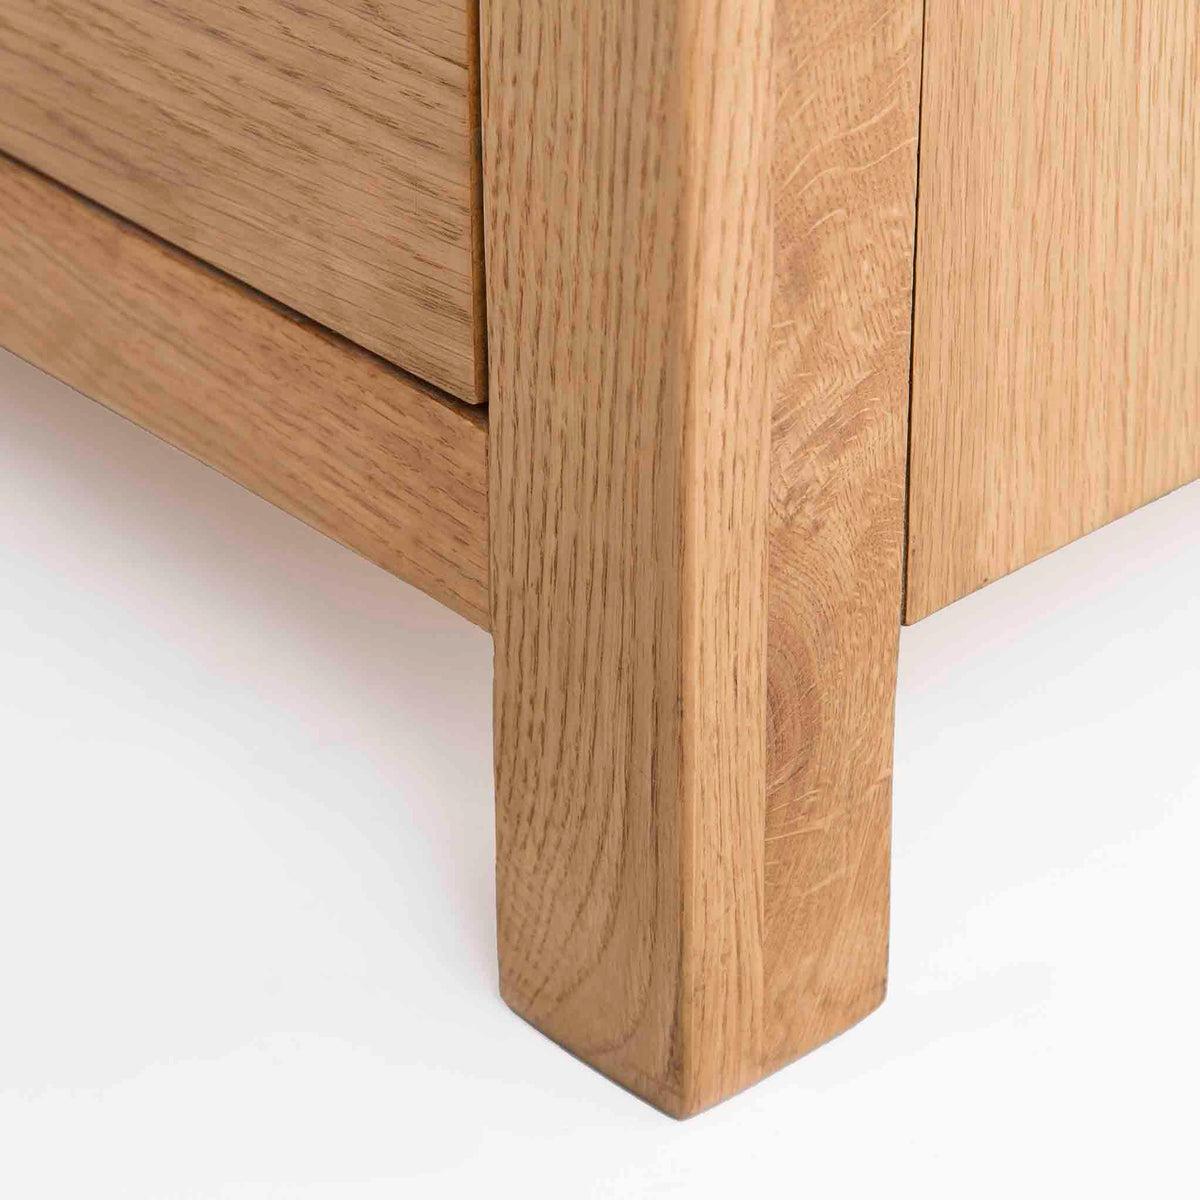 Surrey Oak Large Chest Of Drawers - Close up of foot of drawers